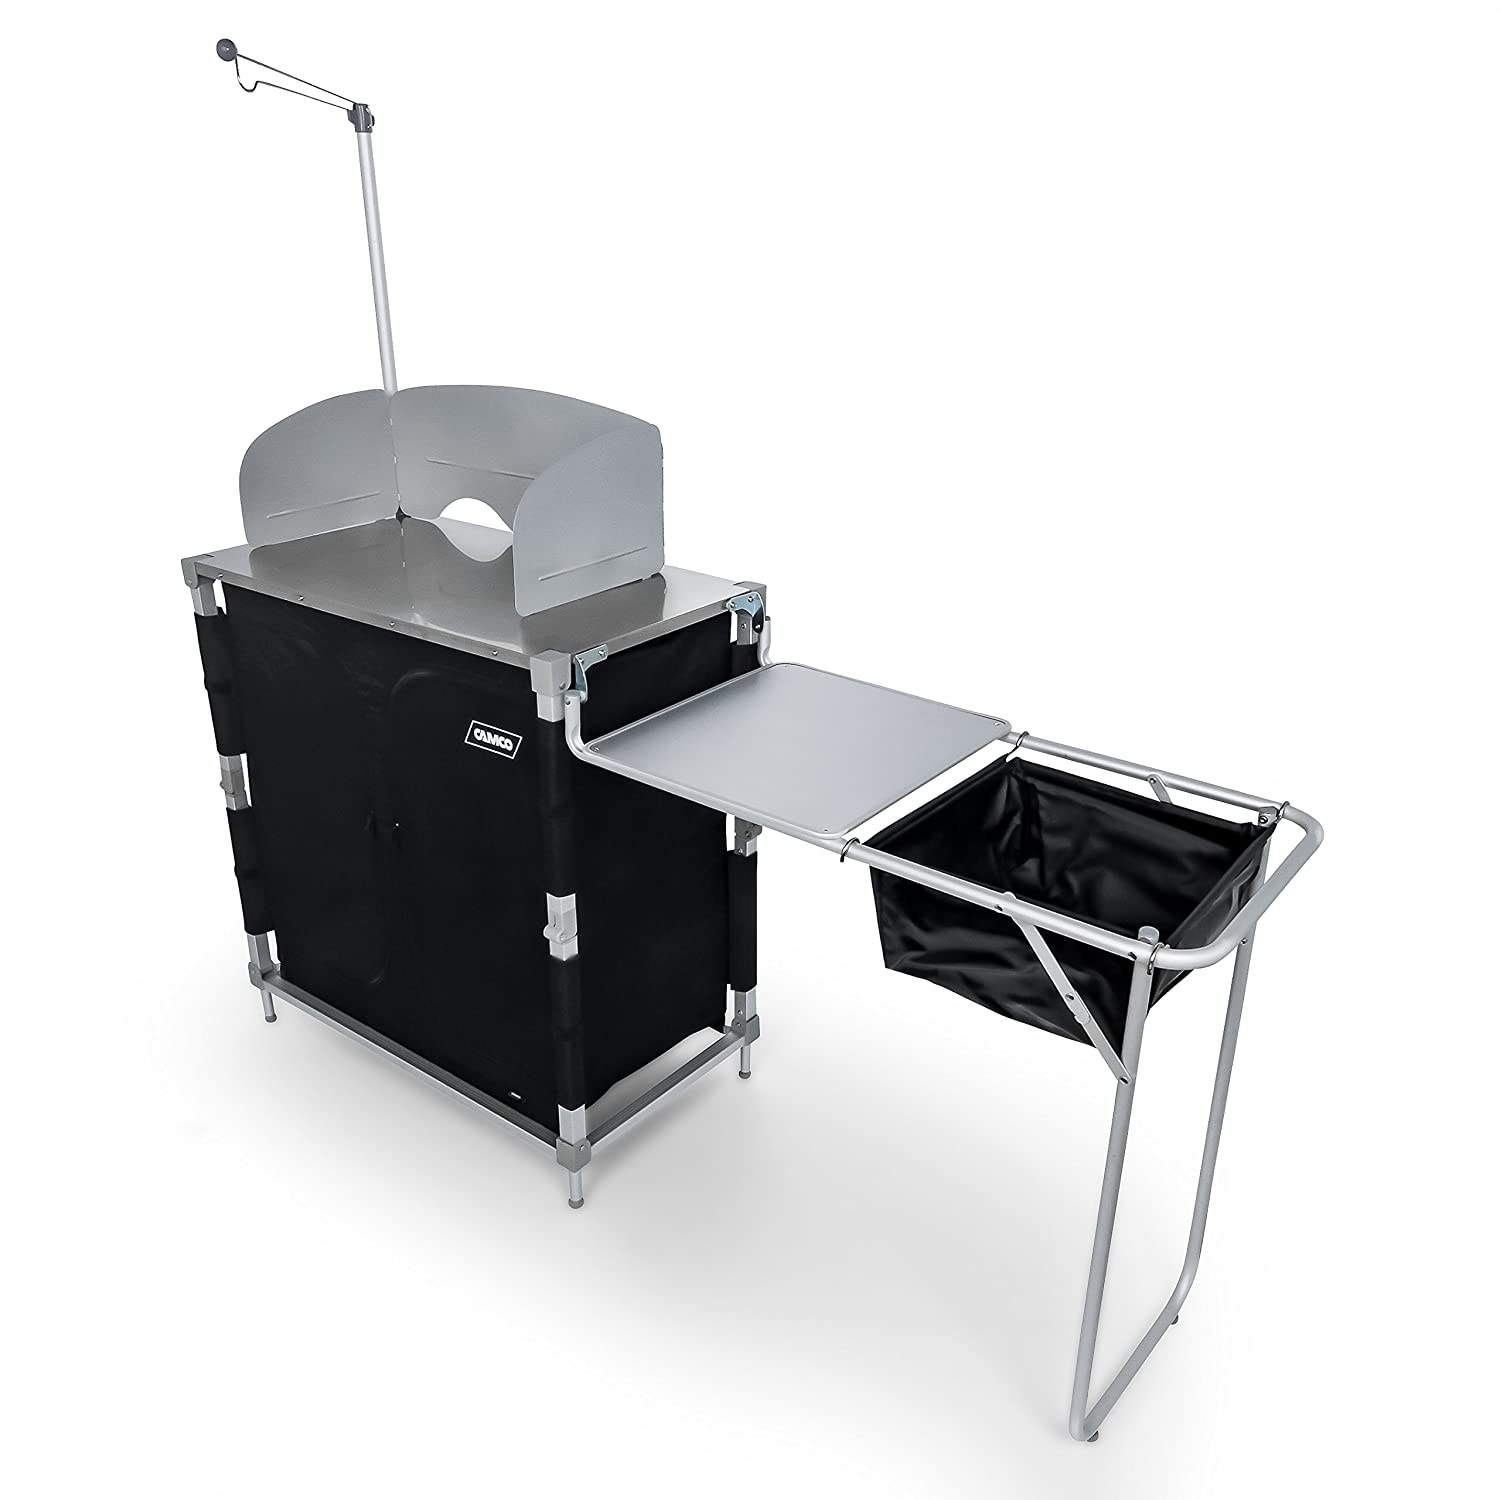 Amazon.com: Camco 51097 Deluxe Camping Kitchen/Grill Table with ...